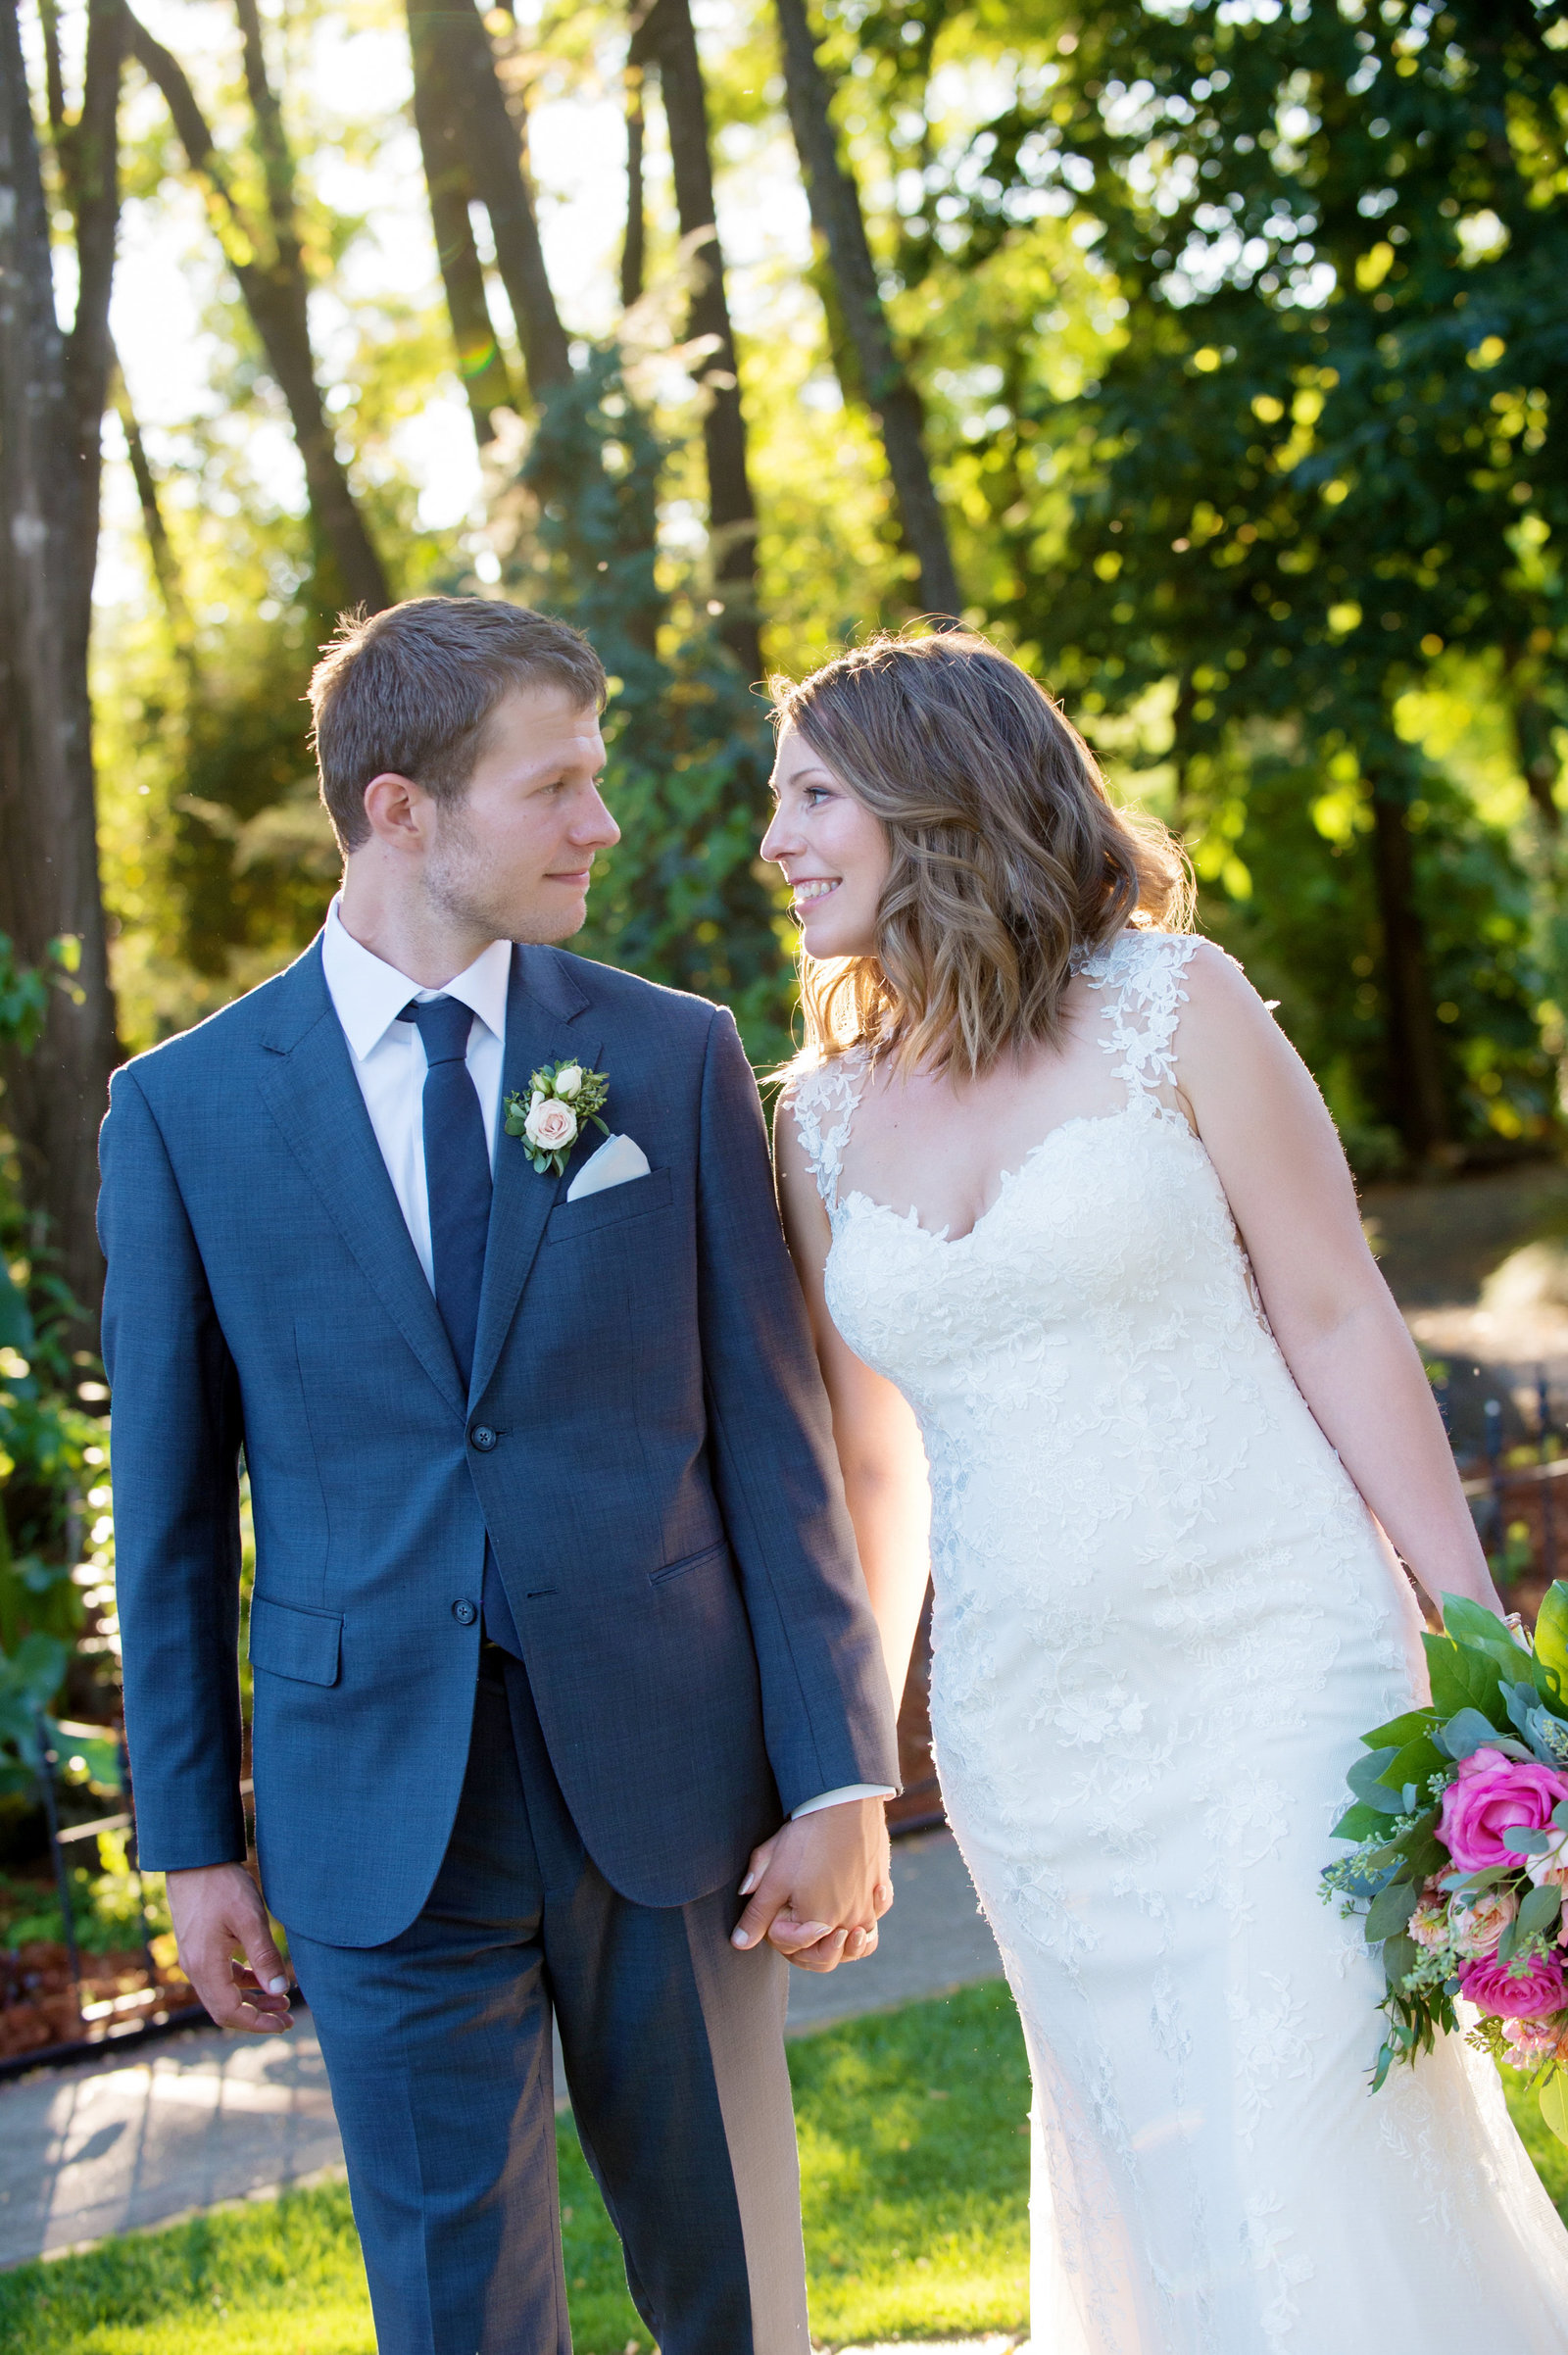 Crystal Genes Photography AINSWORTH HOUSE WEDDING170730-190701